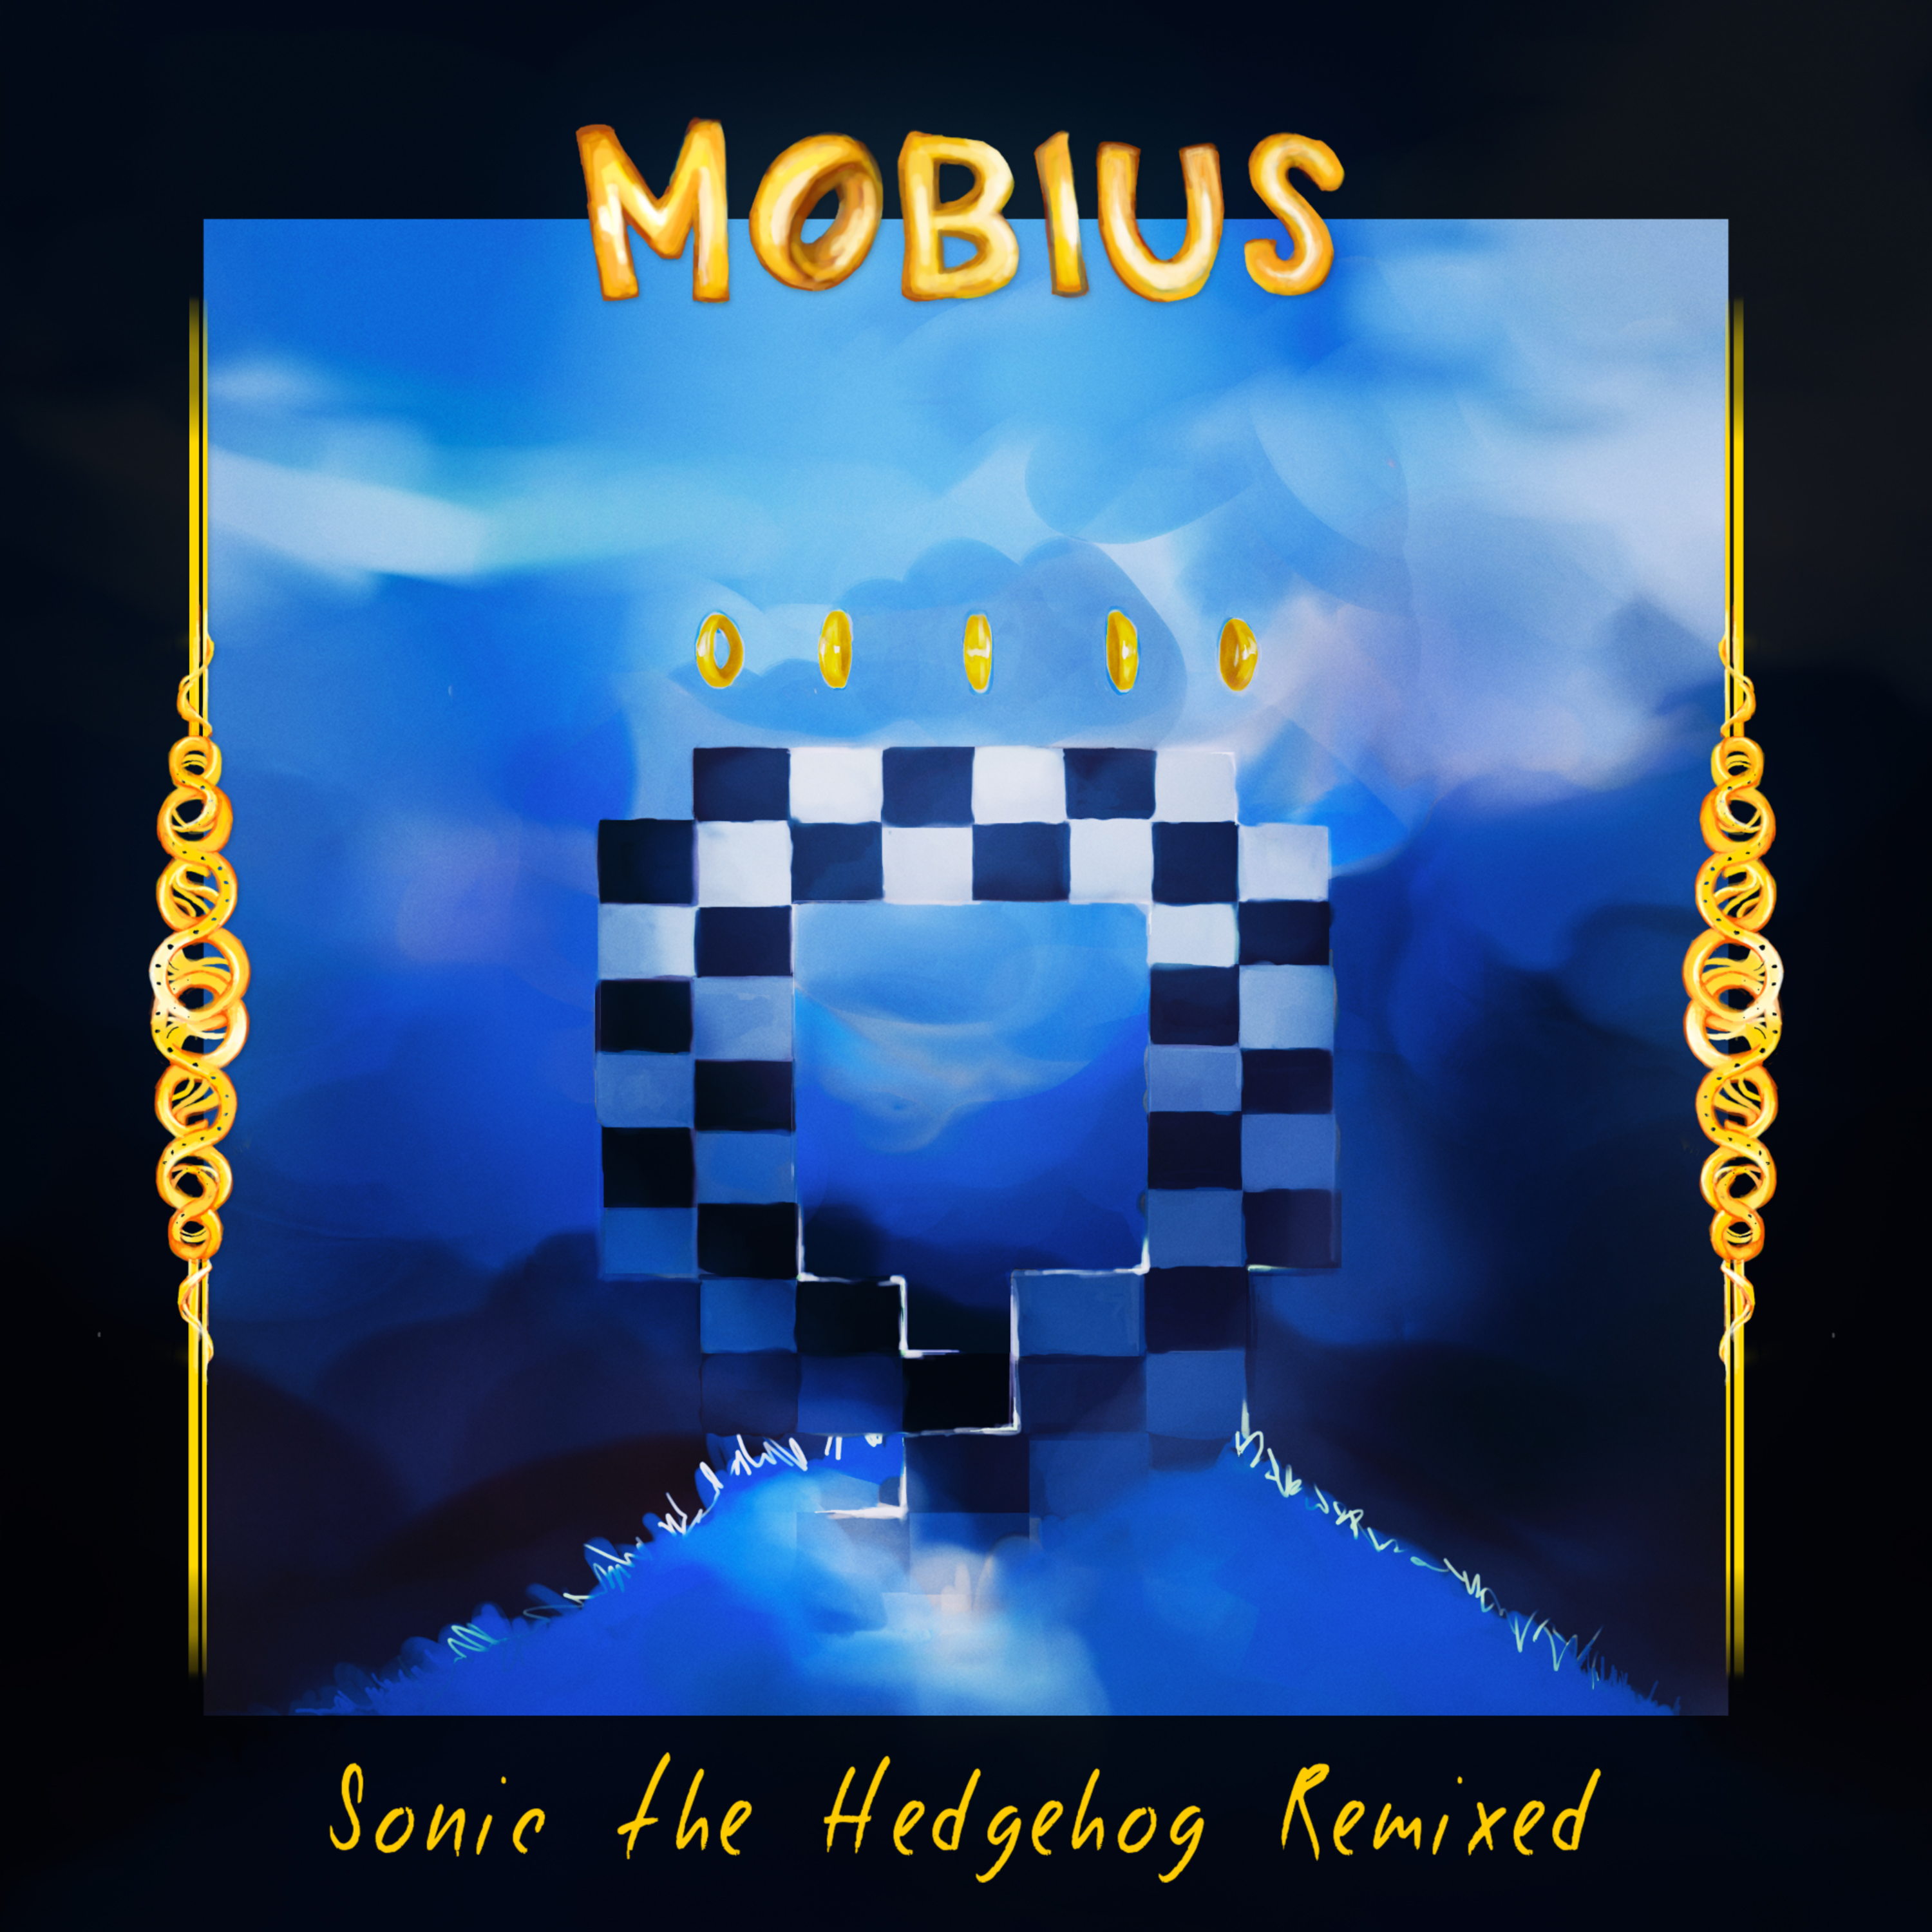 MOBIUS: Sonic the Hedgehog Remixed | Materia Collective